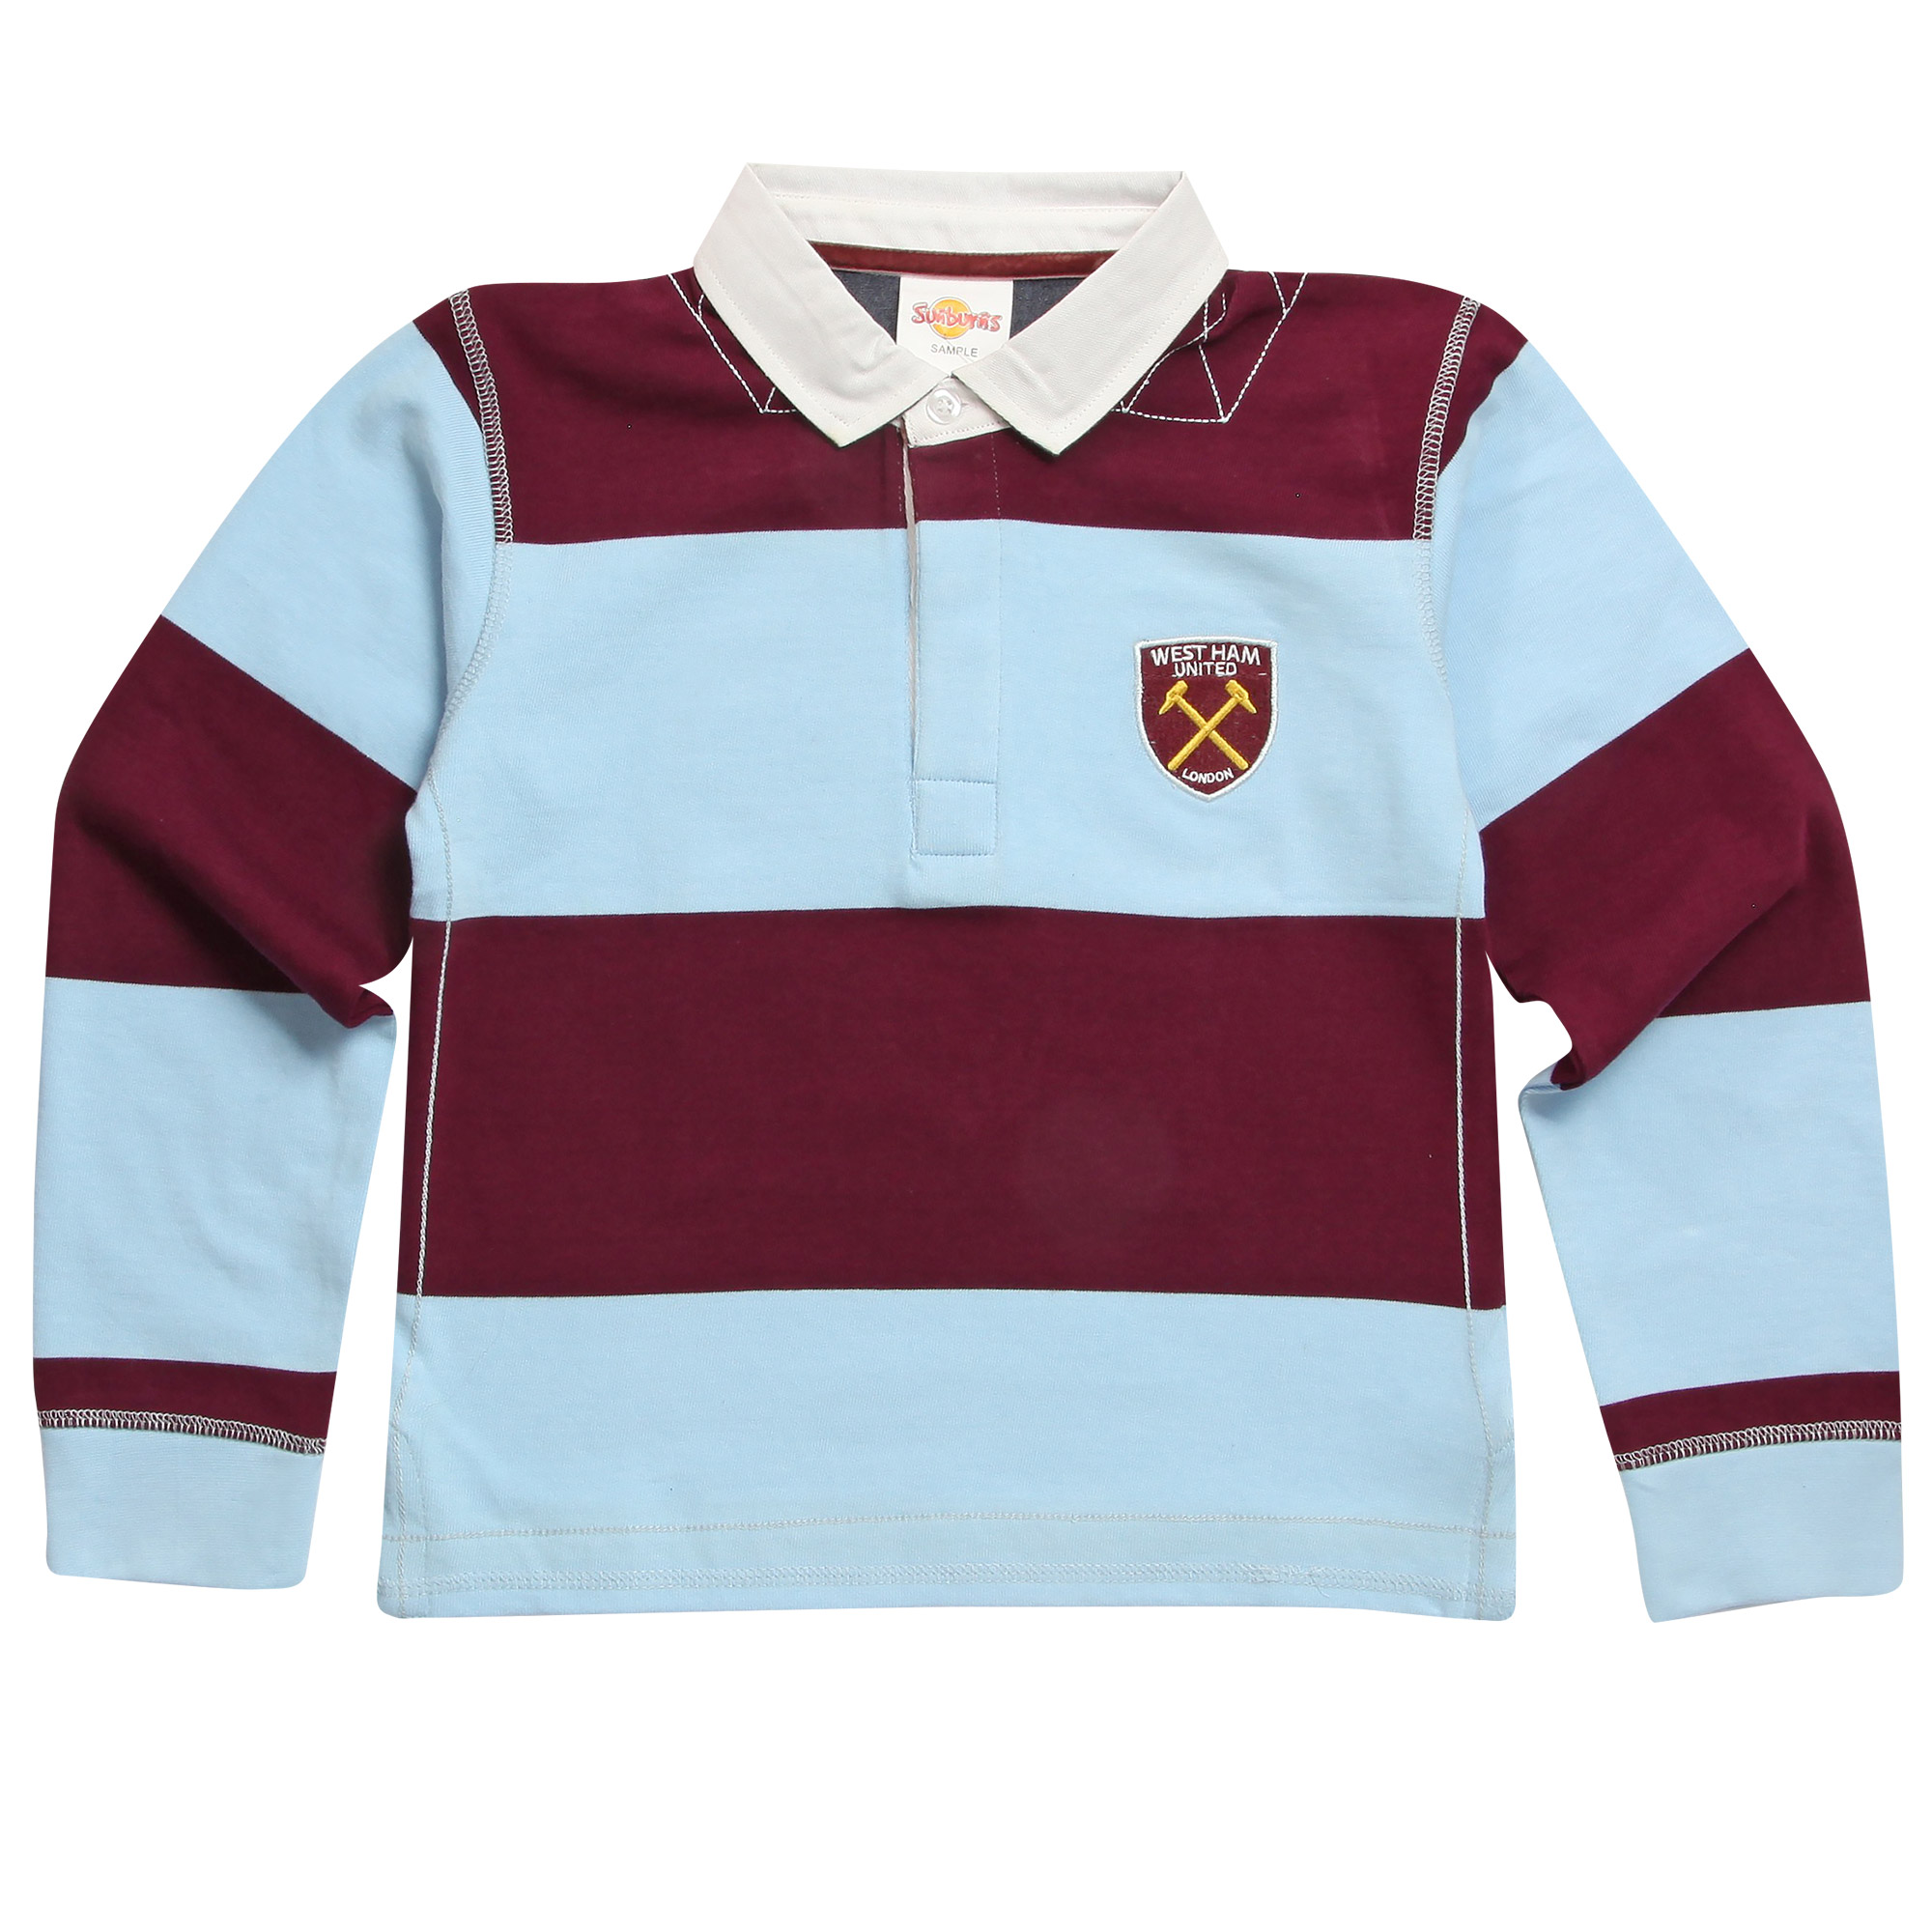 BOYS ORION RUGBY SHIRT